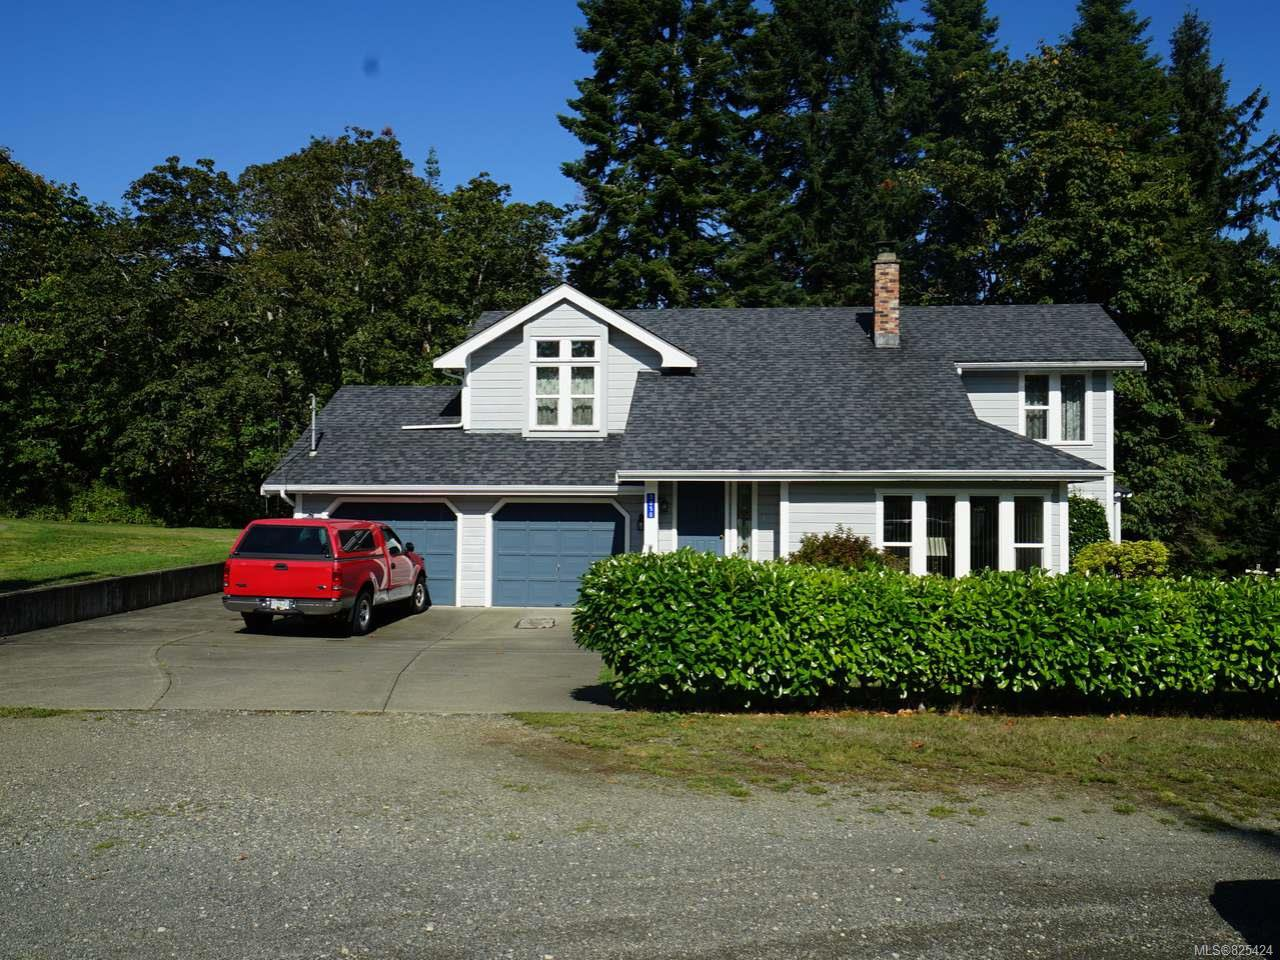 Main Photo: 3850 Laurel Dr in ROYSTON: CV Courtenay South House for sale (Comox Valley)  : MLS®# 825424